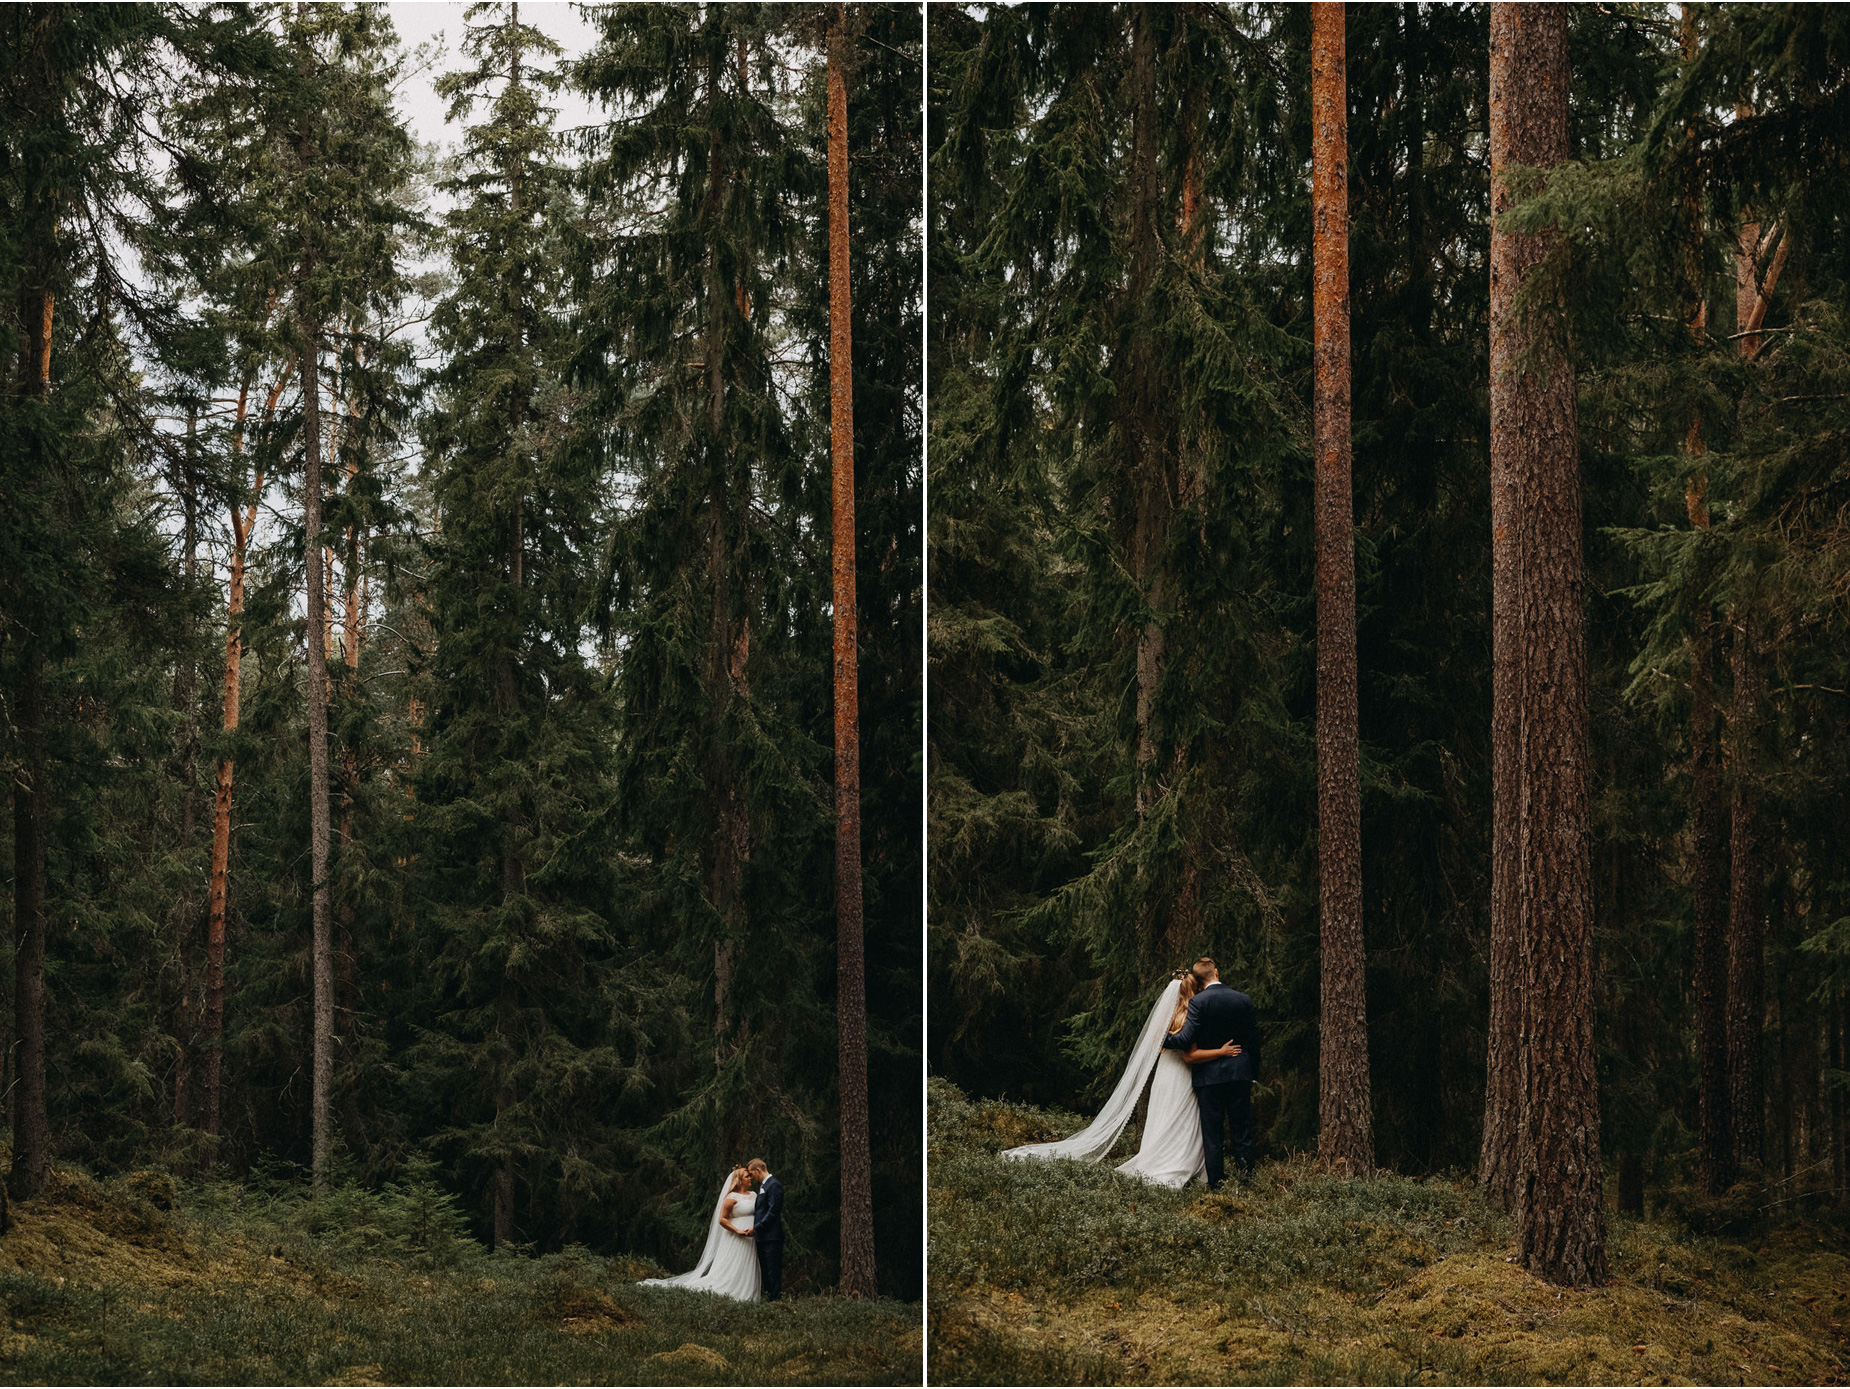 Bröllopsfotografering i småländsk gammelskog - wedding photography in the forest